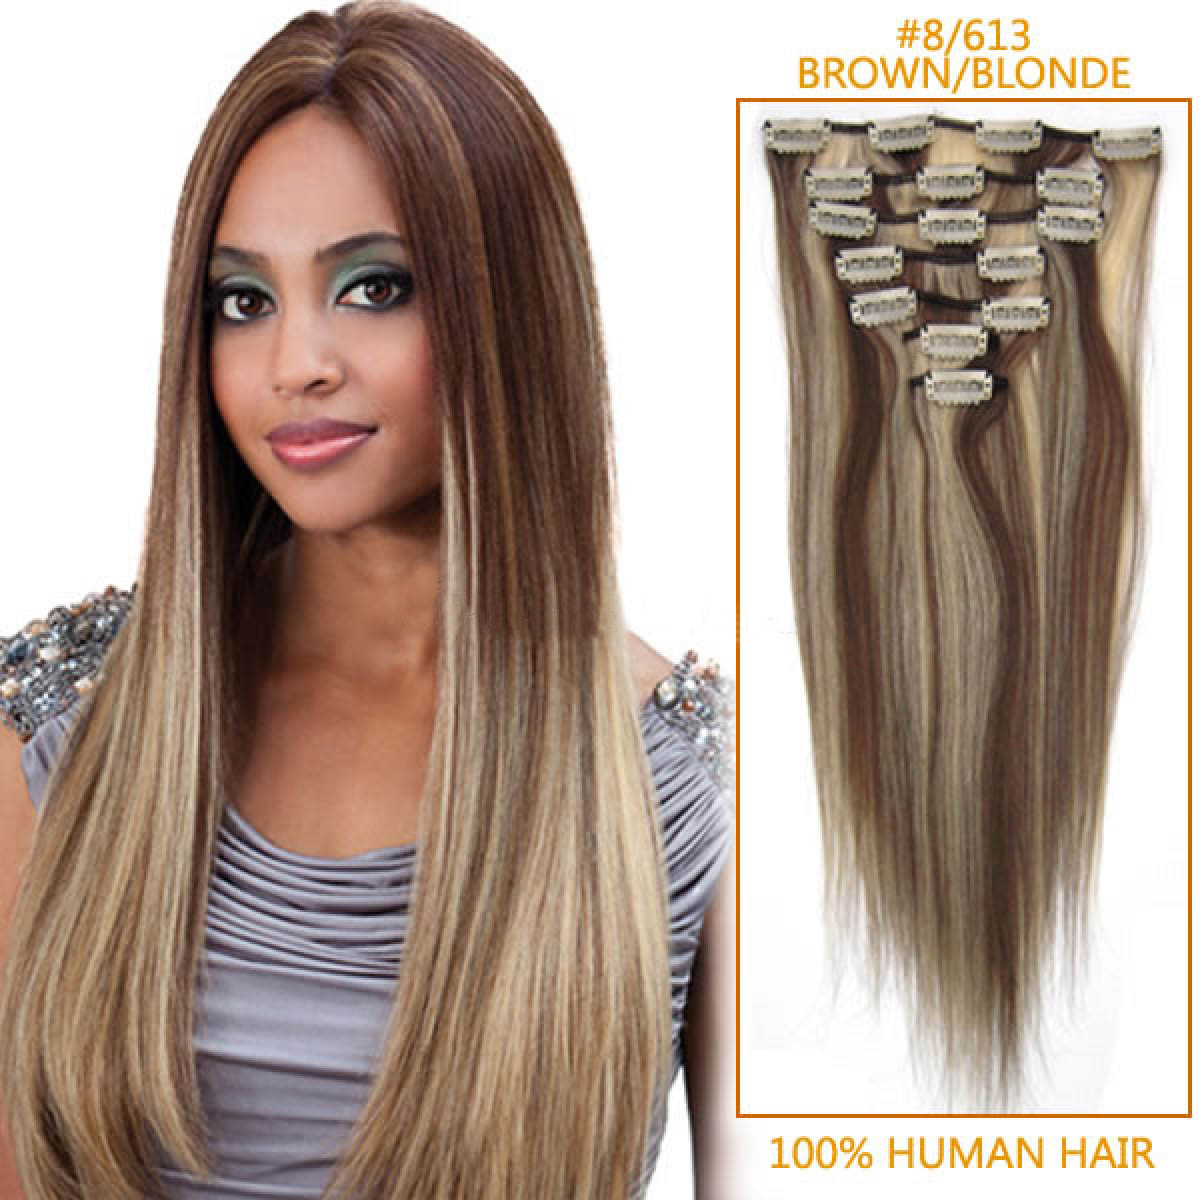 Inch 8613 brownblonde clip in remy human hair extensions 9pcs 20 inch 8613 brownblonde clip in remy human hair extensions 9pcs pmusecretfo Choice Image